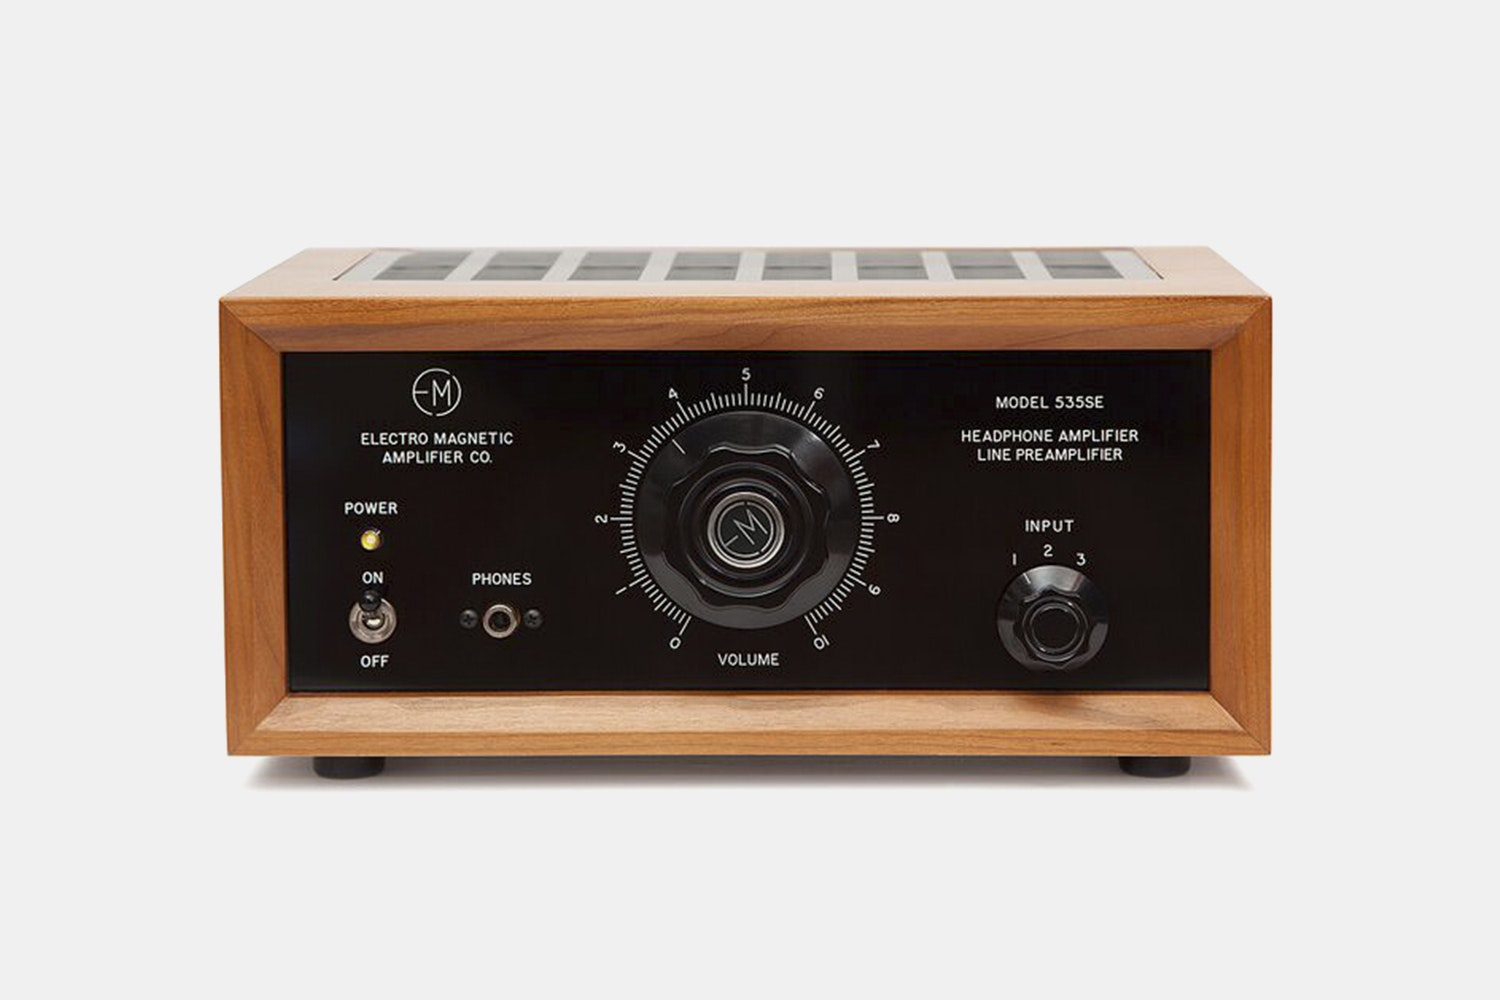 The Audio Guild EMAC 535SE Headphone Amp